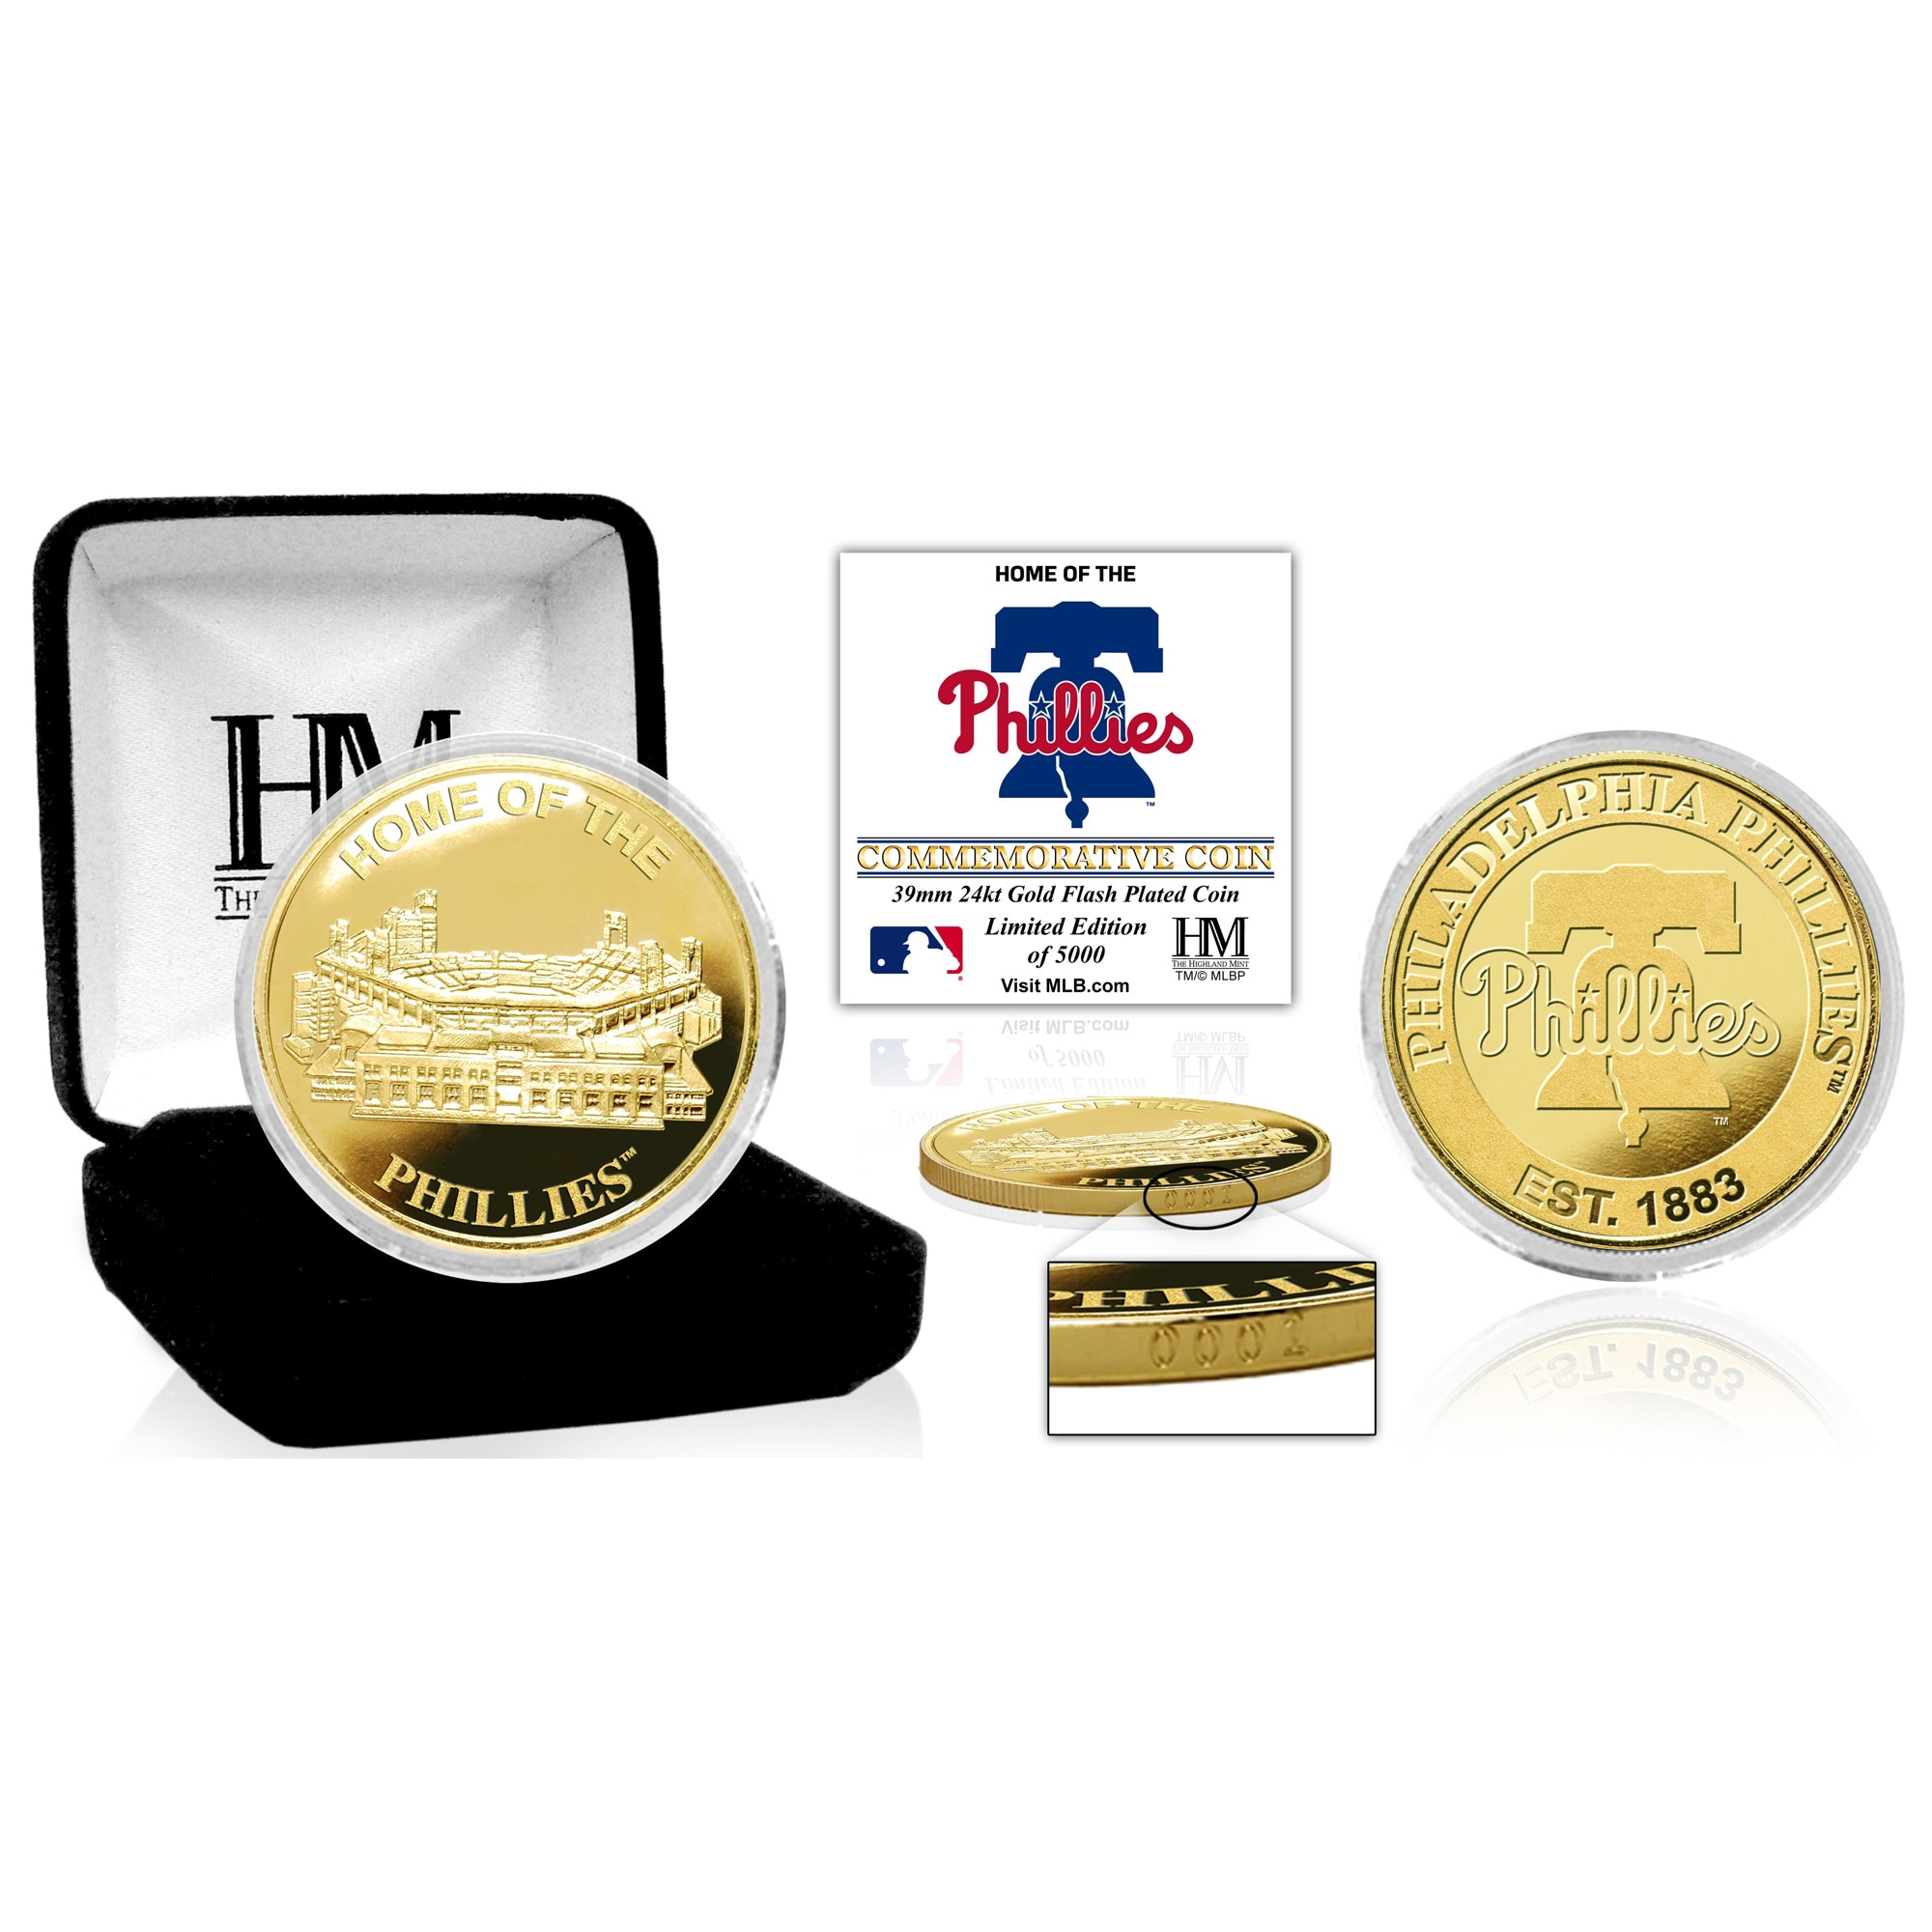 Philadelphia Phillies Highland Mint Stadium Gold Mint Coin